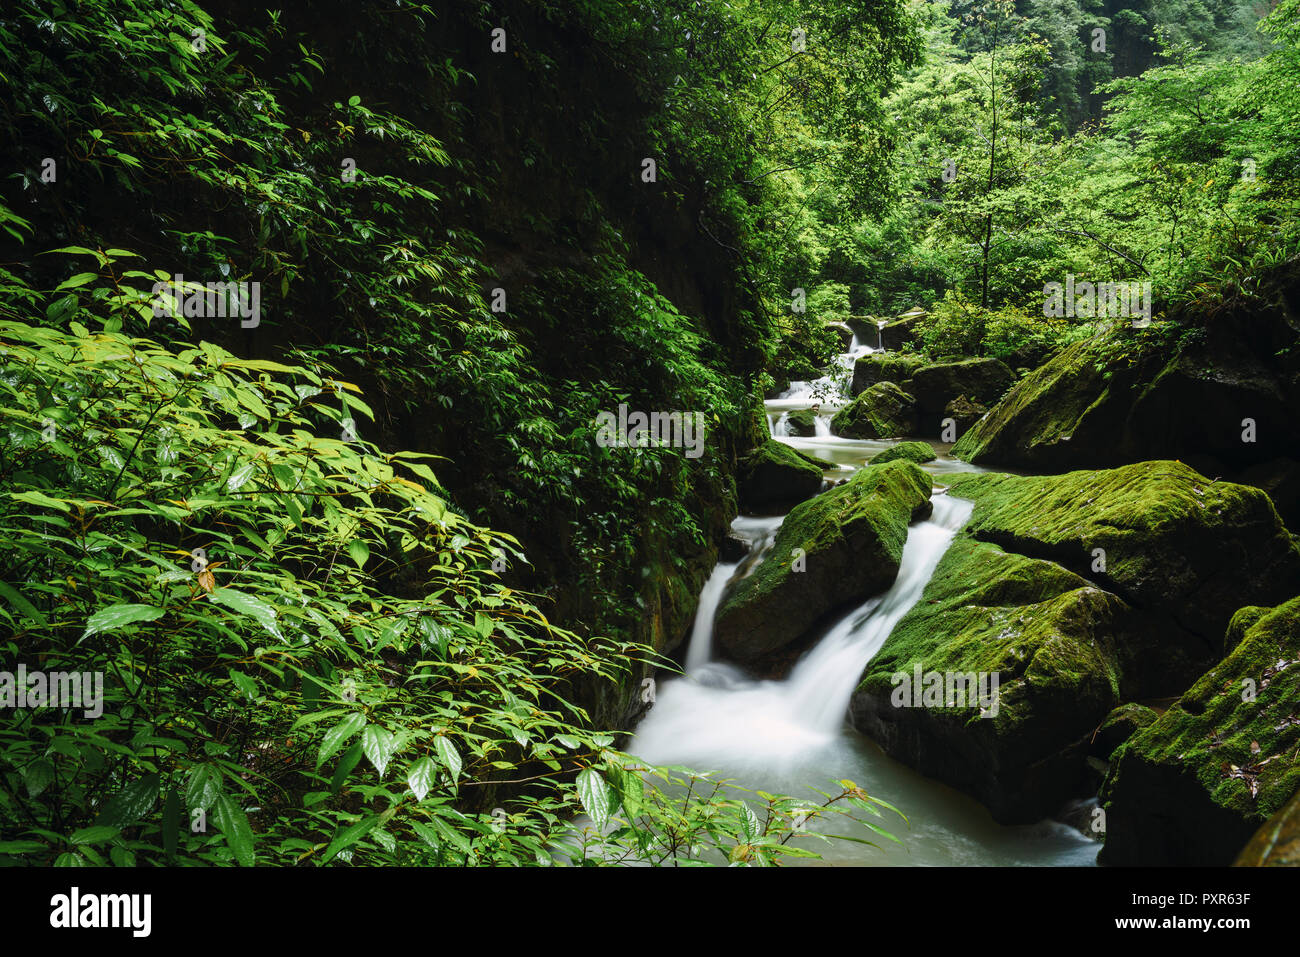 China, Sichuan Province, Wulong Karst National Geology Park Stock Photo